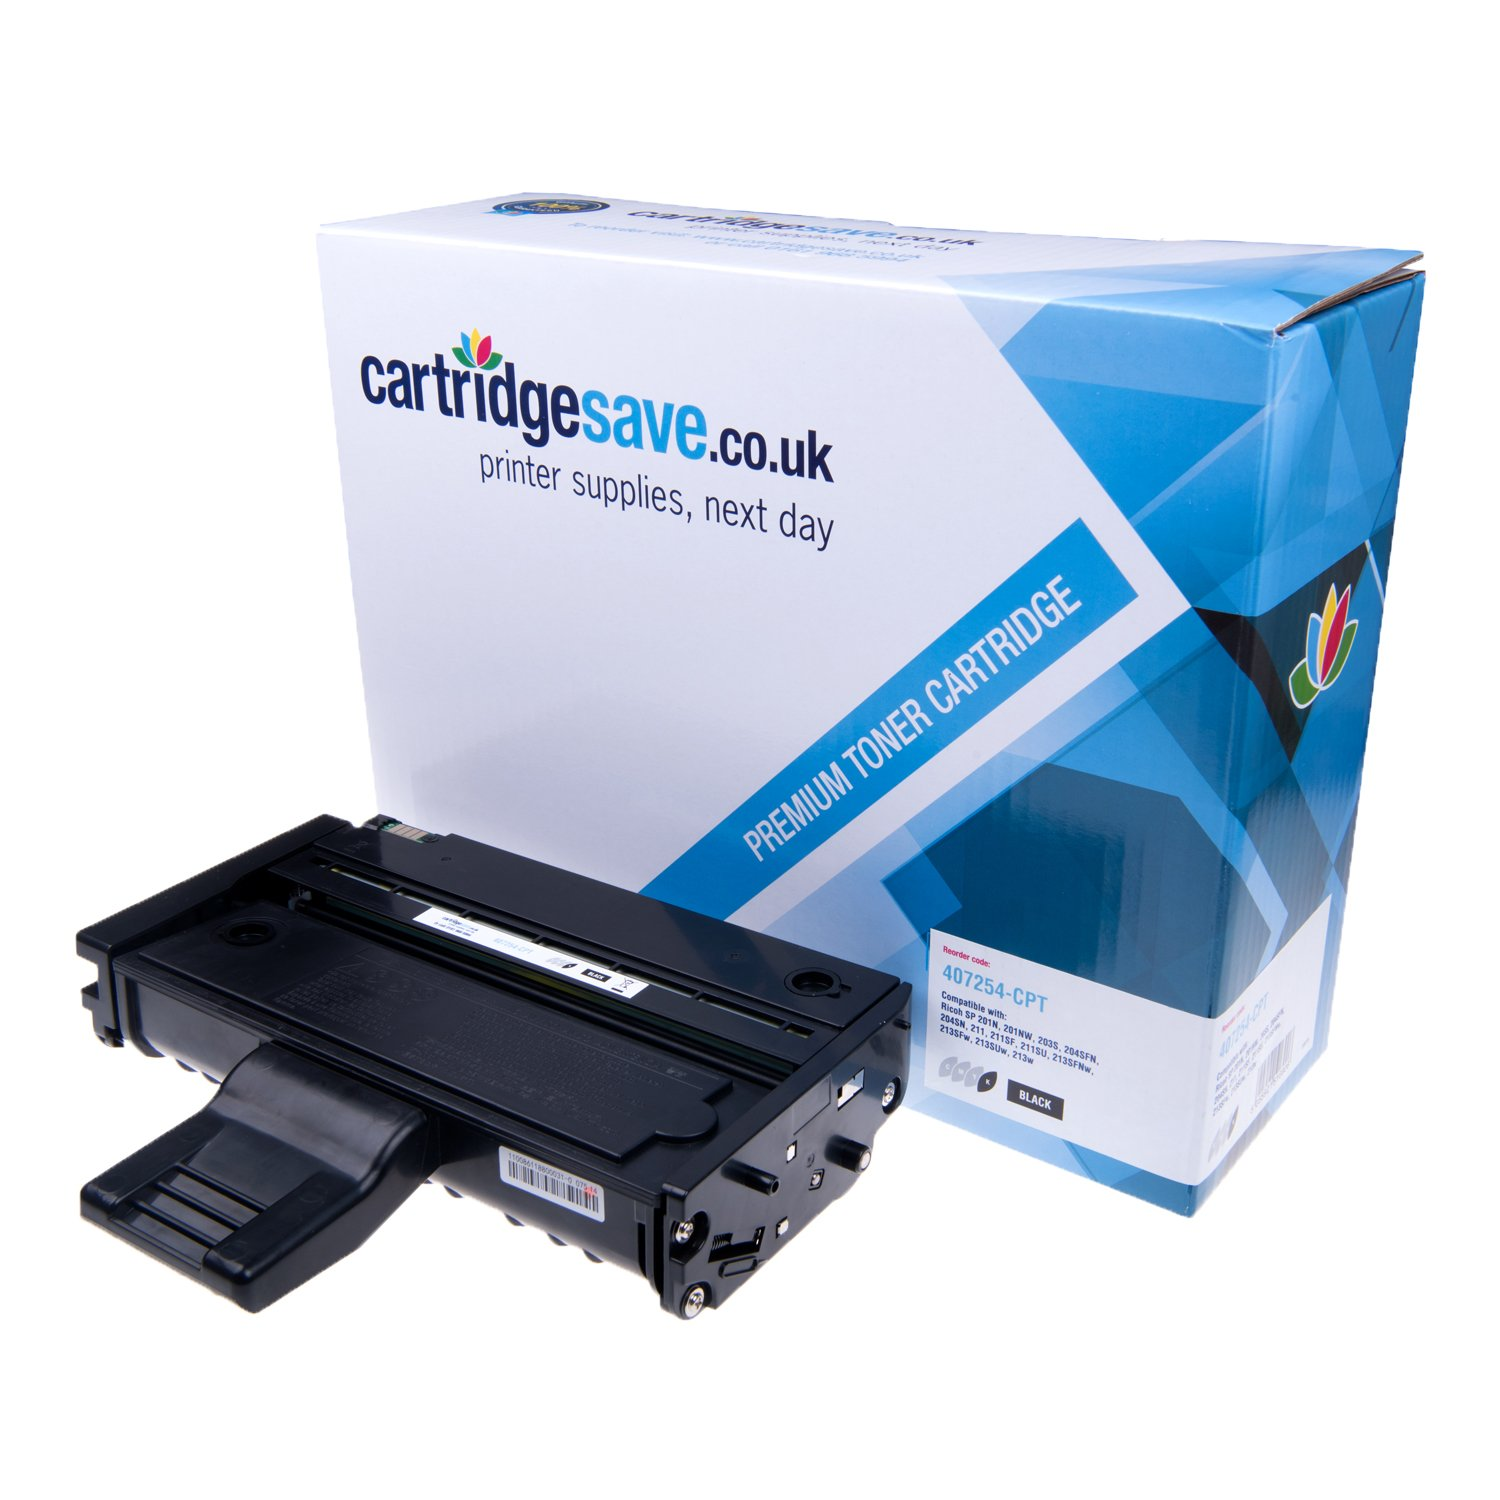 Compatible High Capacity Black Ricoh 407254 Laser Toner (Replaces Ricoh 407254 Laser Printer Cartridge)